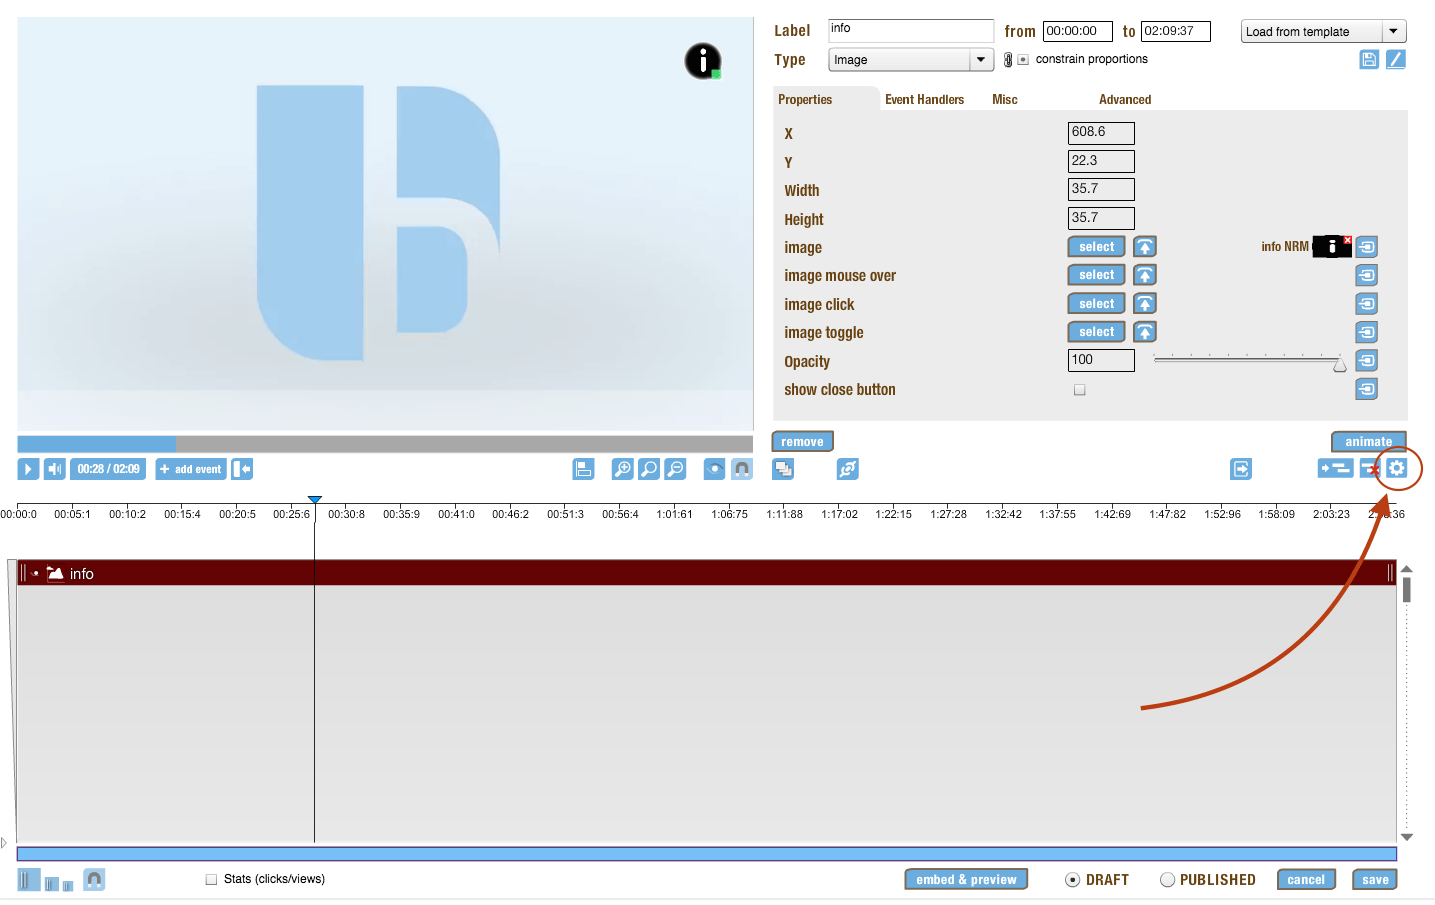 settings in the timeline editor